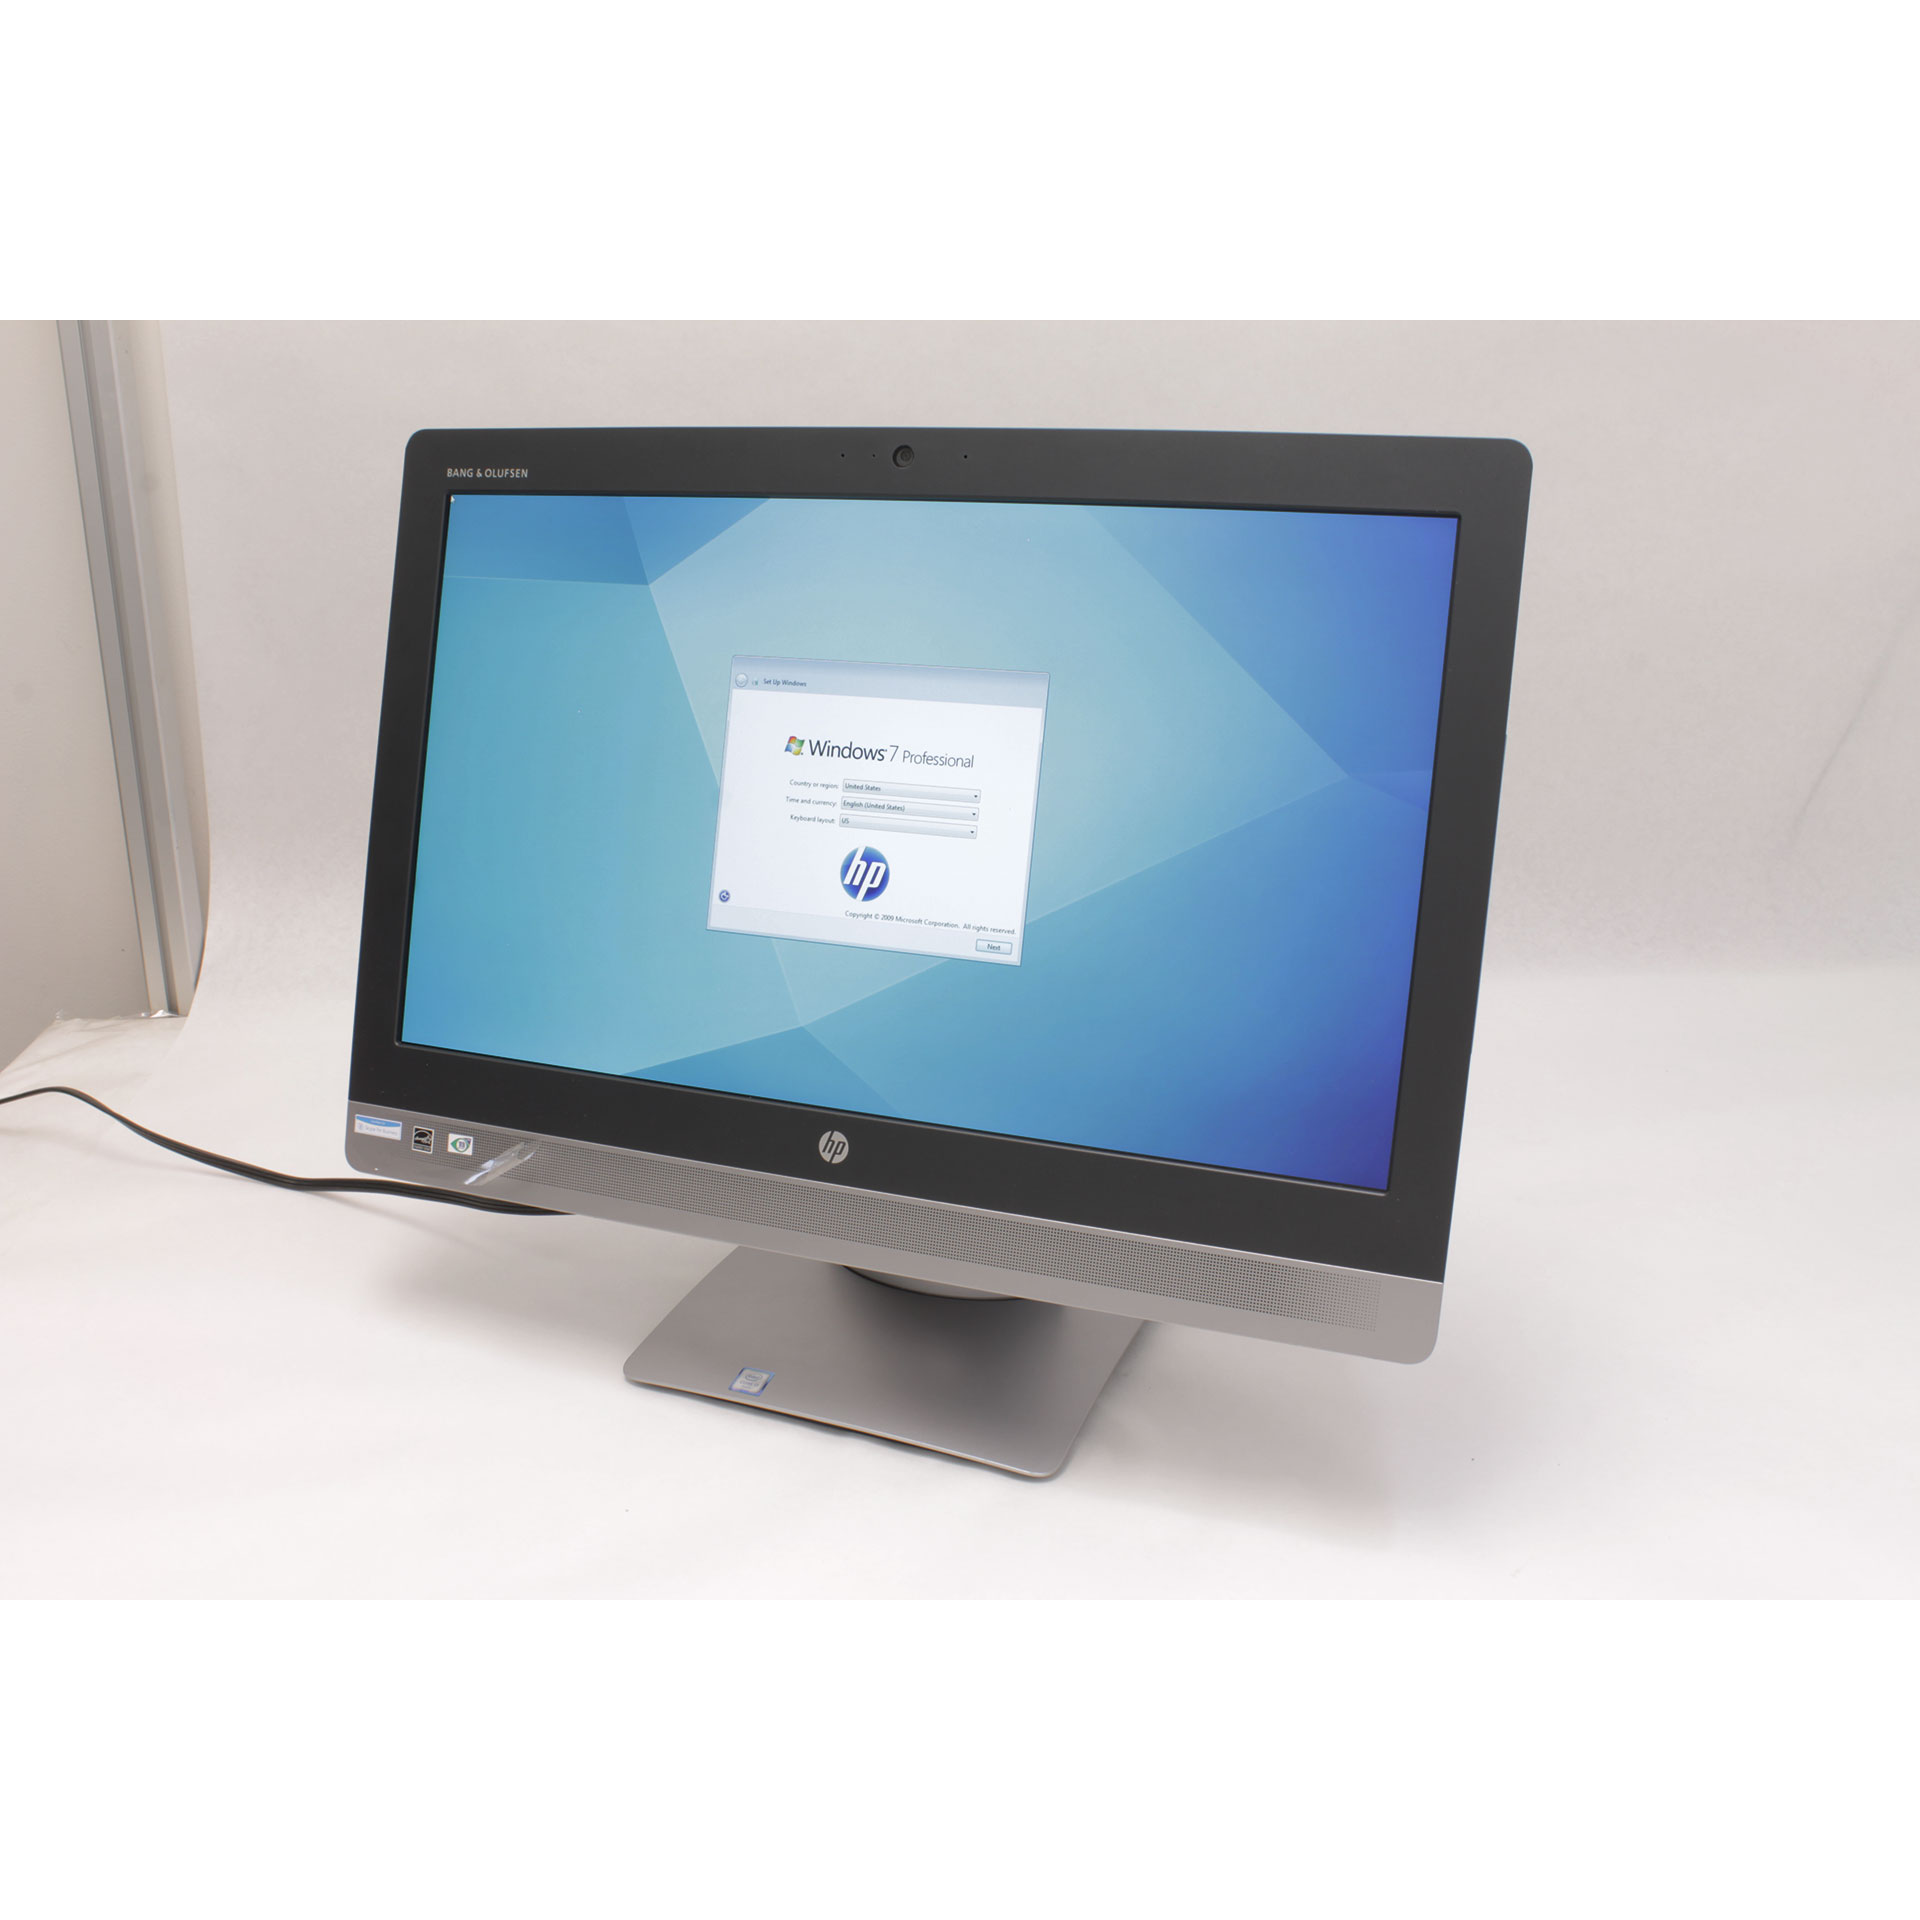 "HP EliteOne 800 G2 i7 6700 8GB 1TB 23"" Touchscreen P5V05UT#ABA"